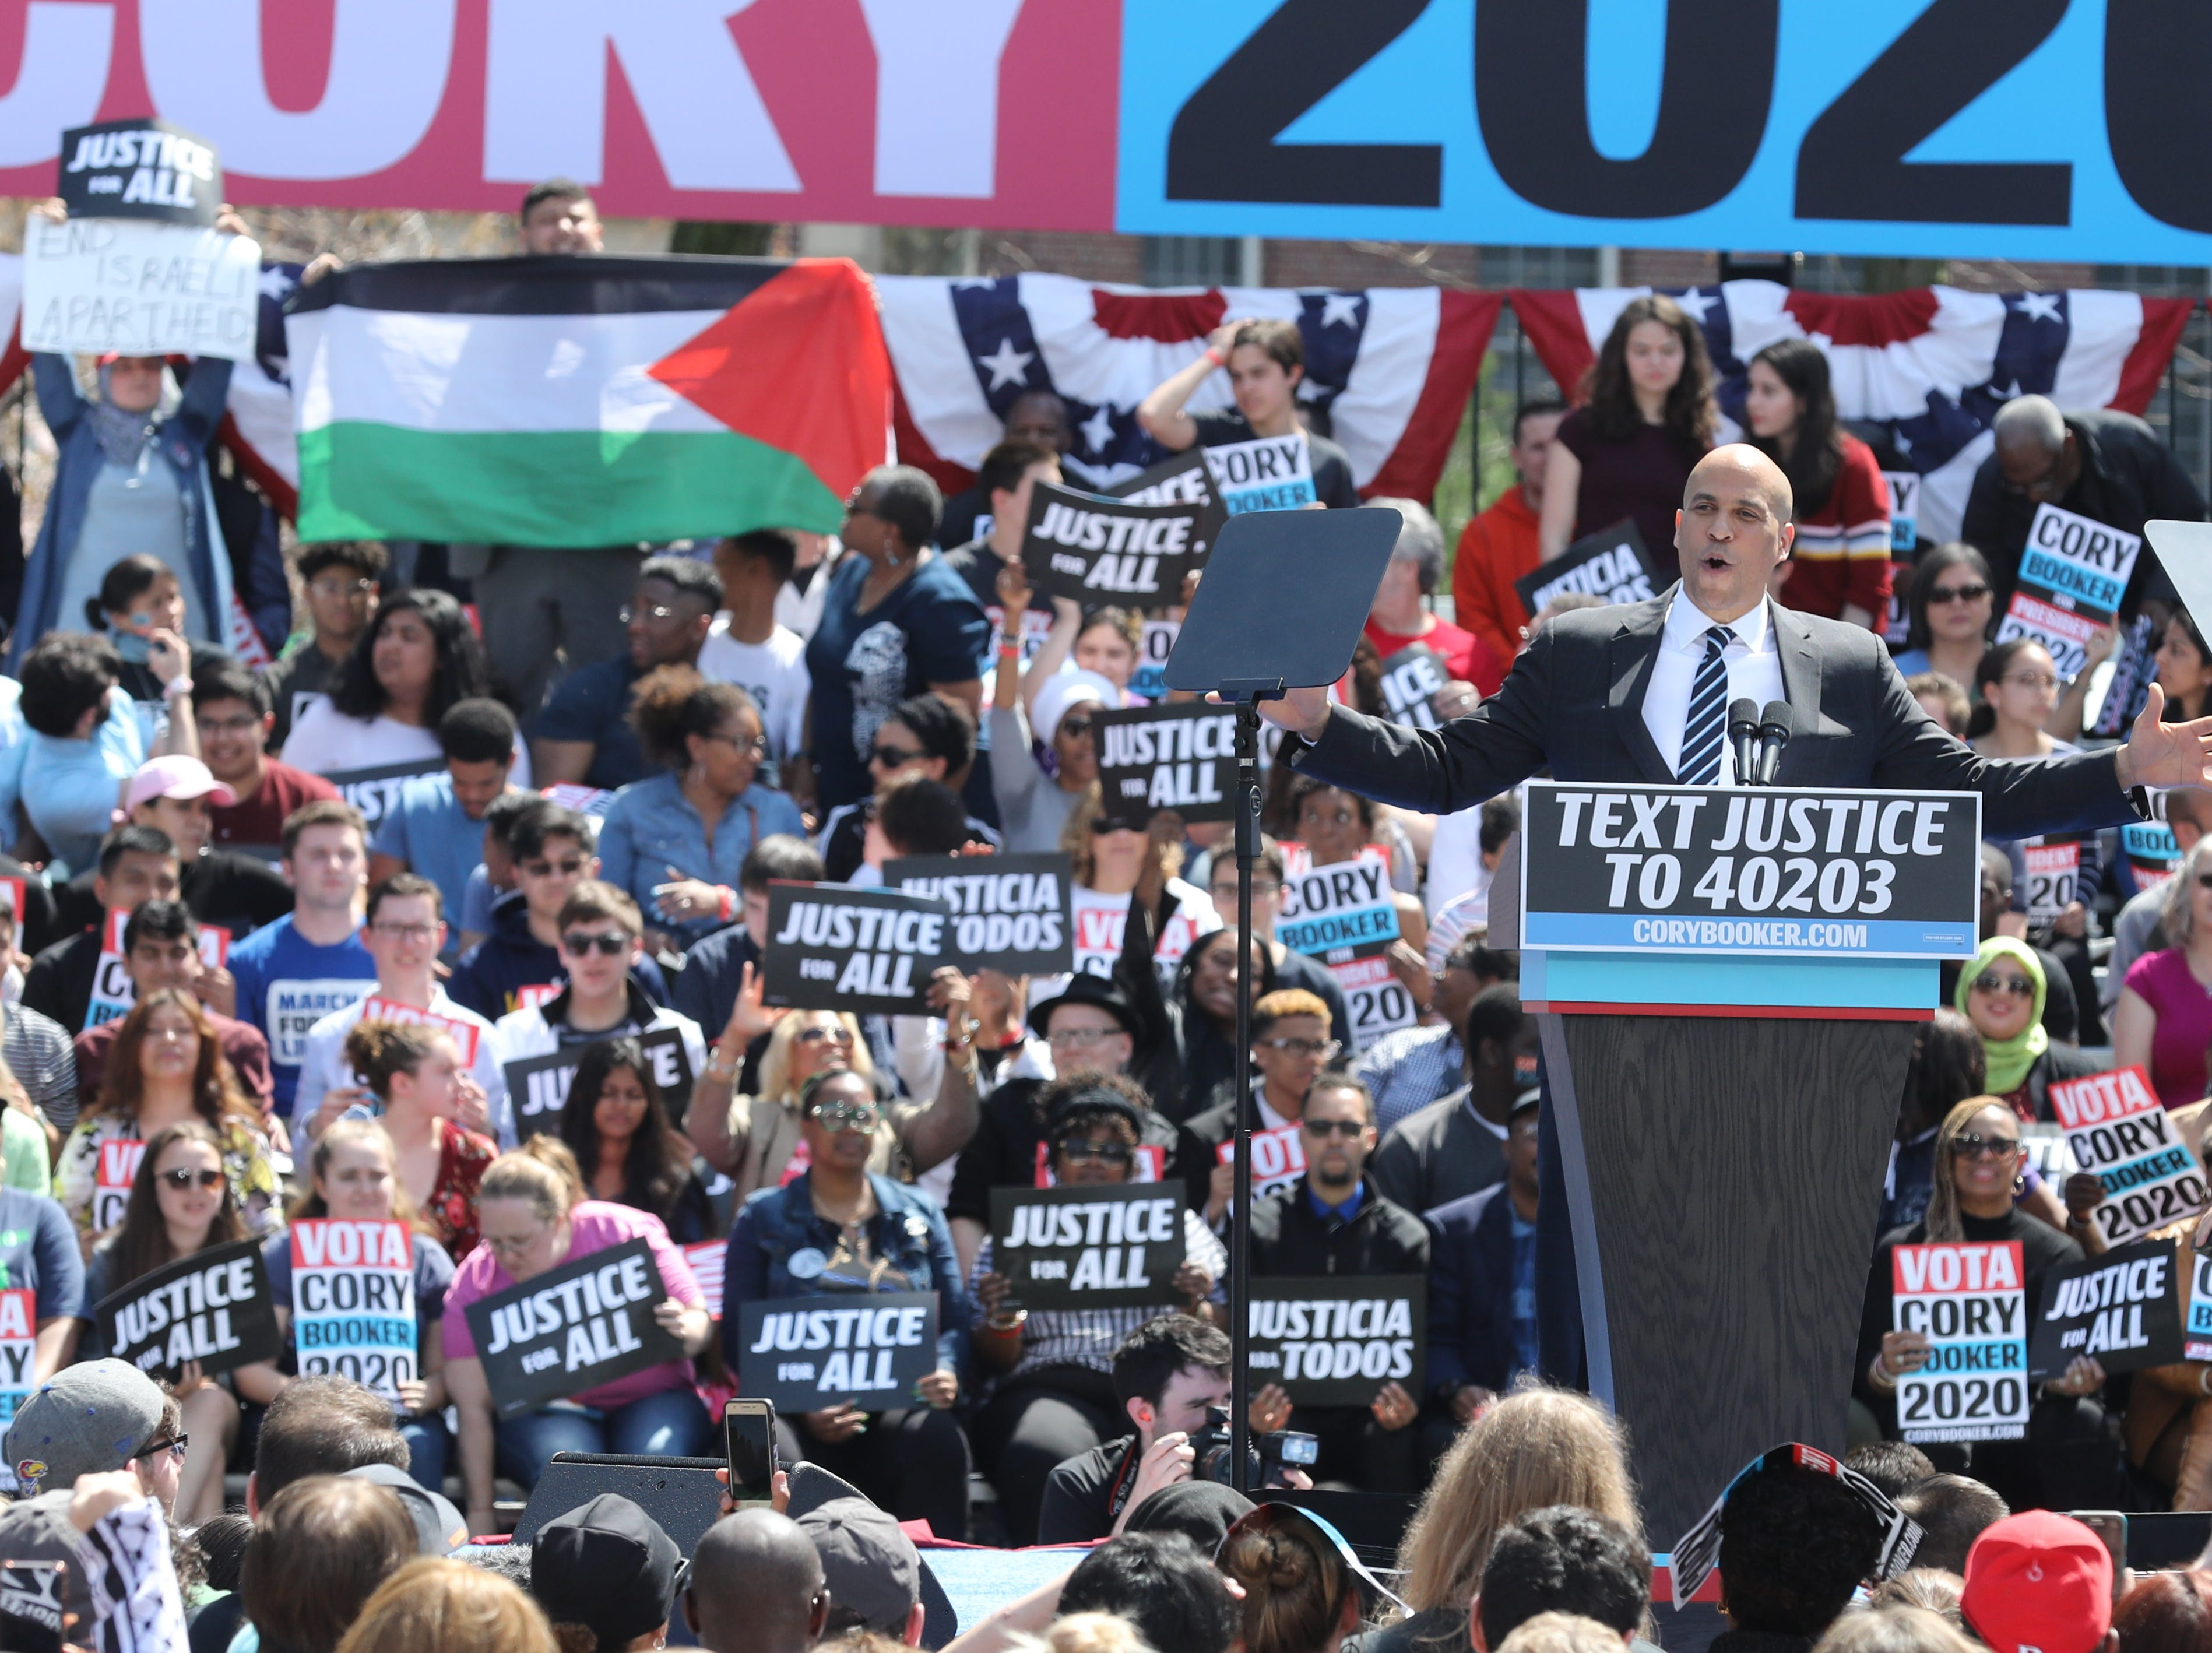 Protesters chanting Free Palestine hold a Palestinian flag during Senator and presidential candidate Cory Booker's address to supporters at a rally to kick off the Cory Booker campaign for president that was held at Military Park in Newark on April 13, 2019.